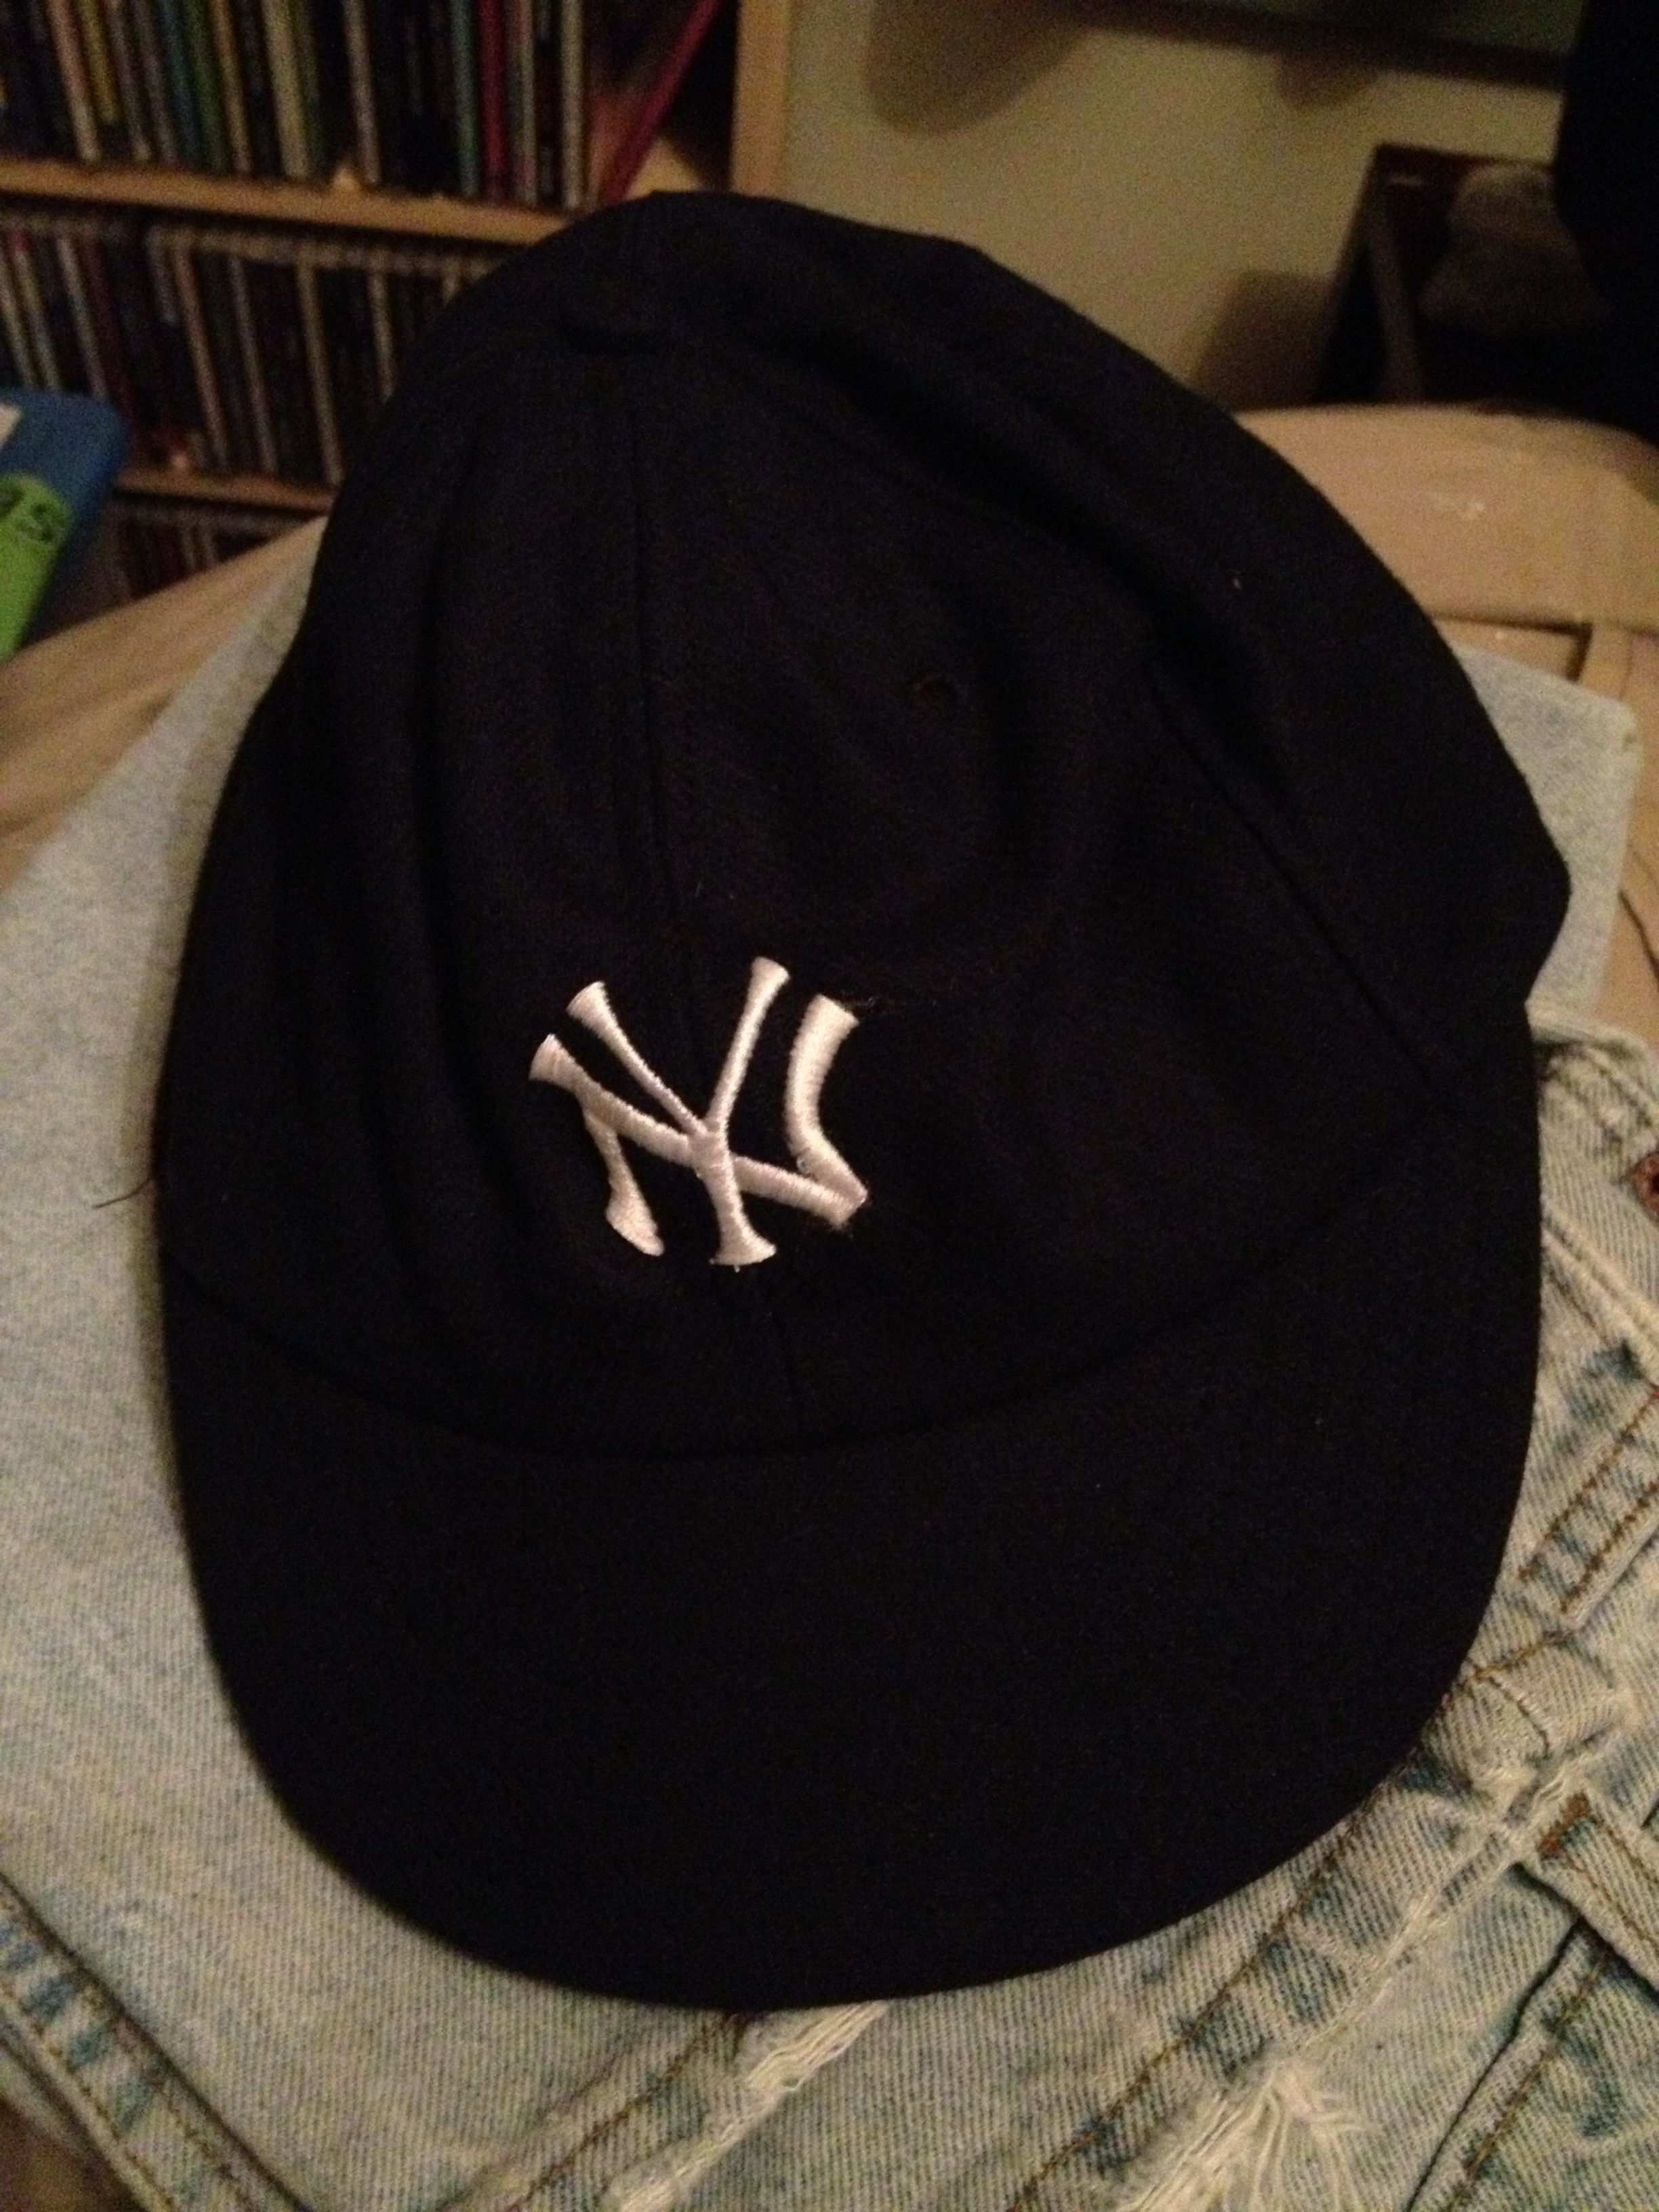 81284f9a 1920's New York Yankees baseball cap made for me by Cooperstown Ball Cap